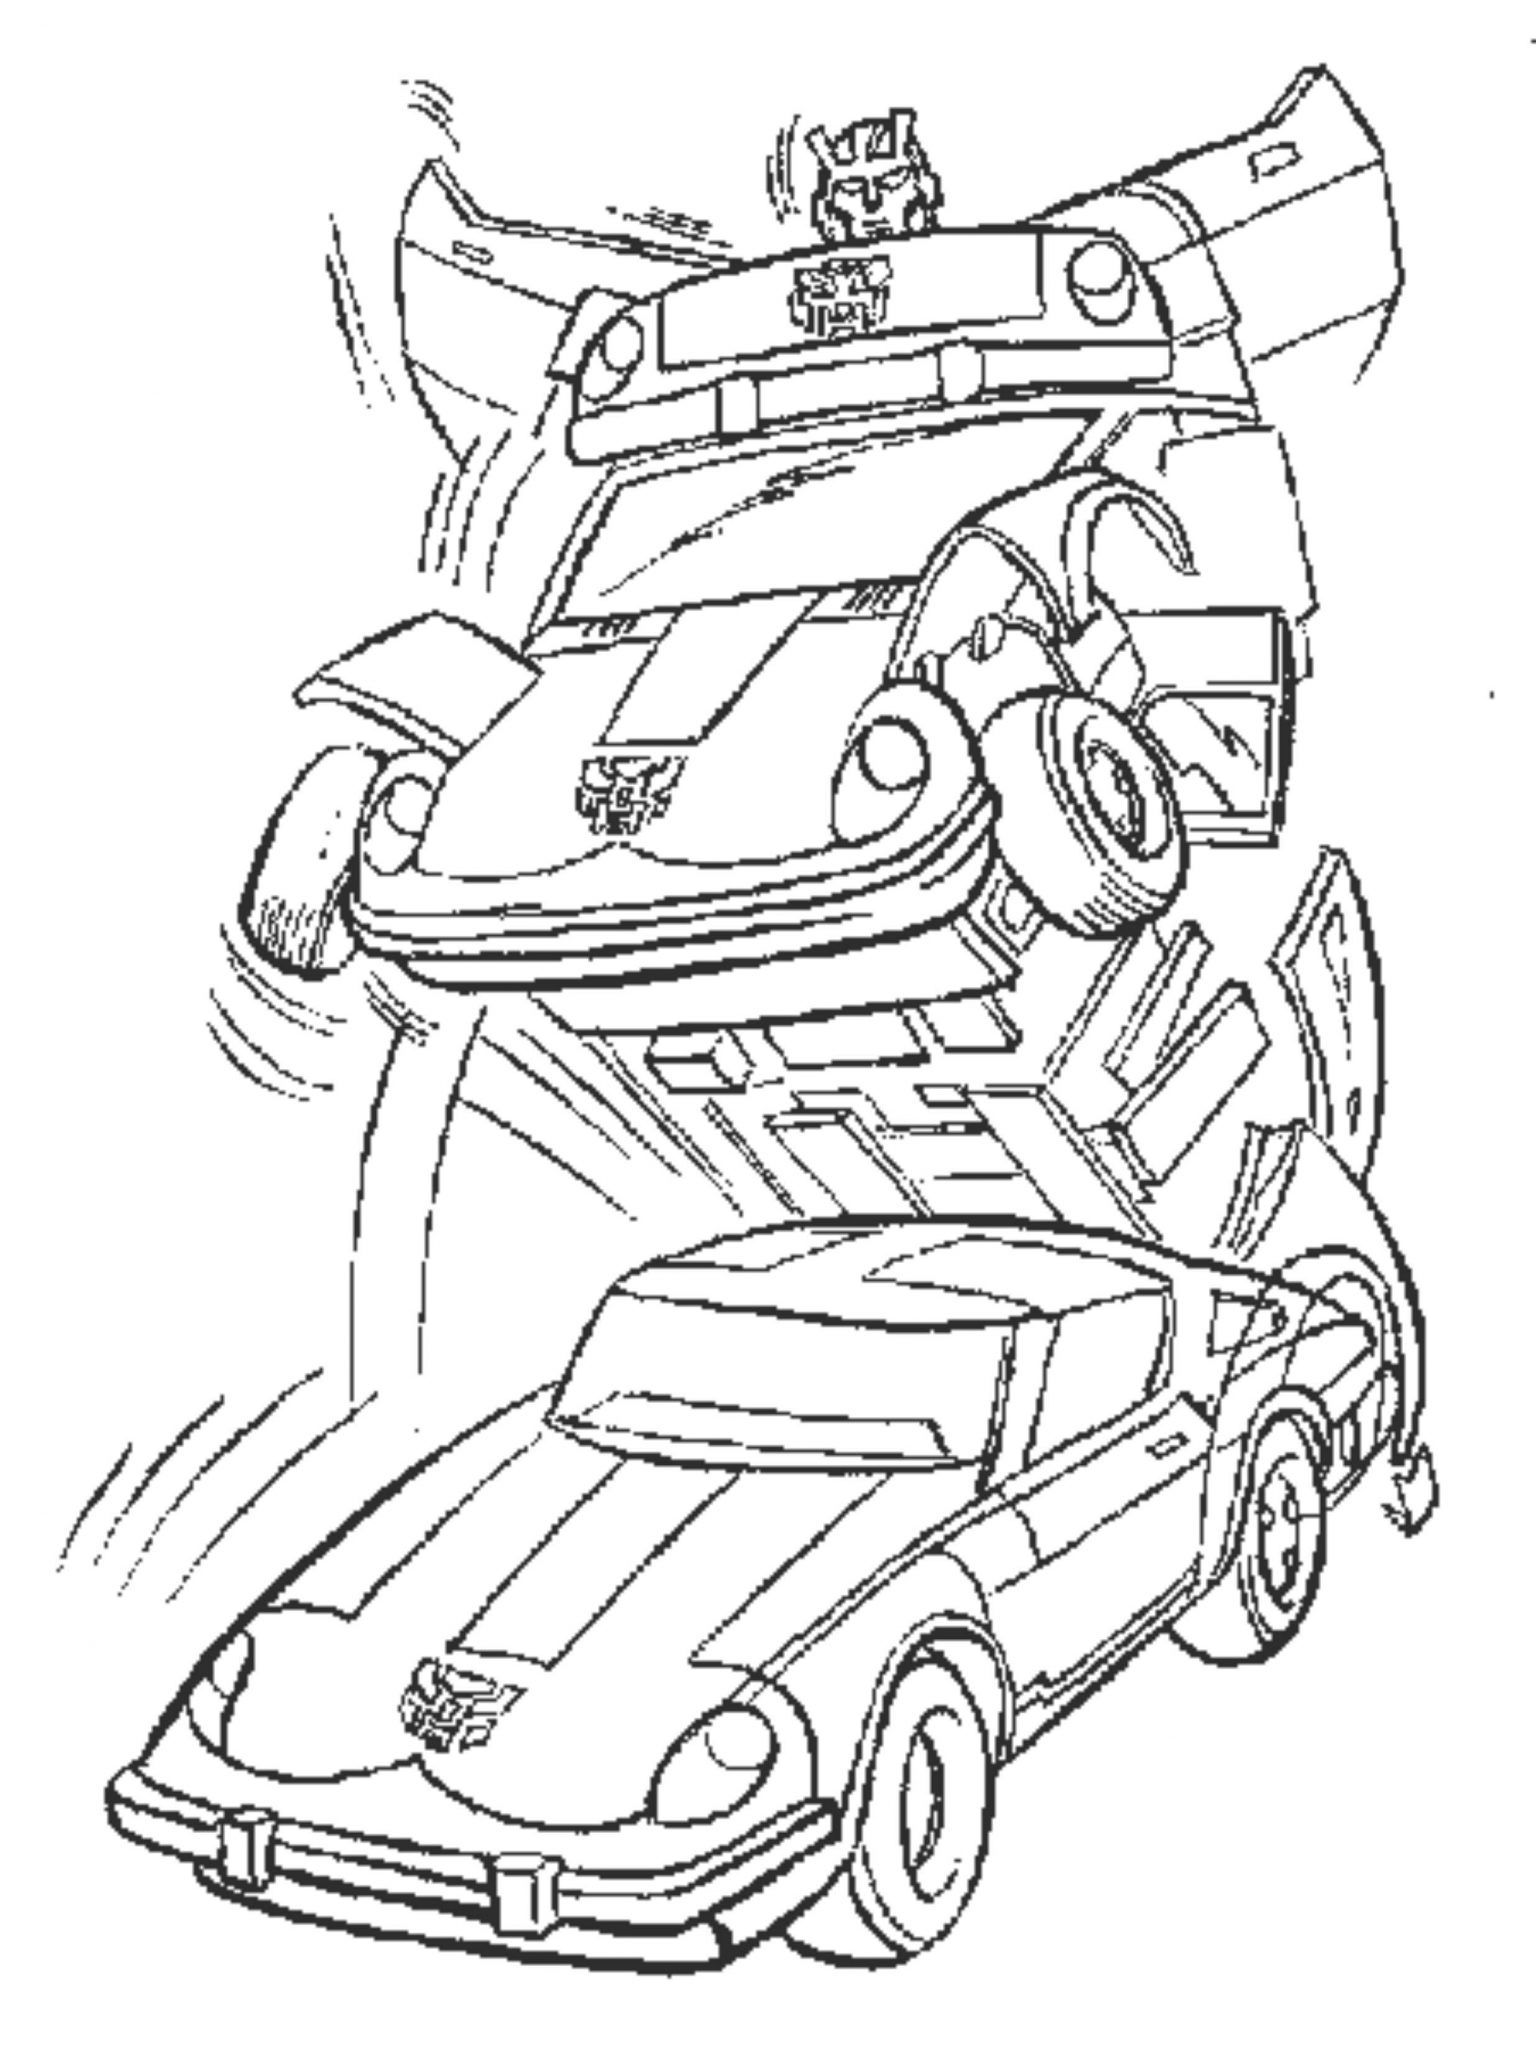 Transformers Car Coloring Pages Collection Transformers Coloring Pages Dinosaur Coloring Pages Bee Coloring Pages